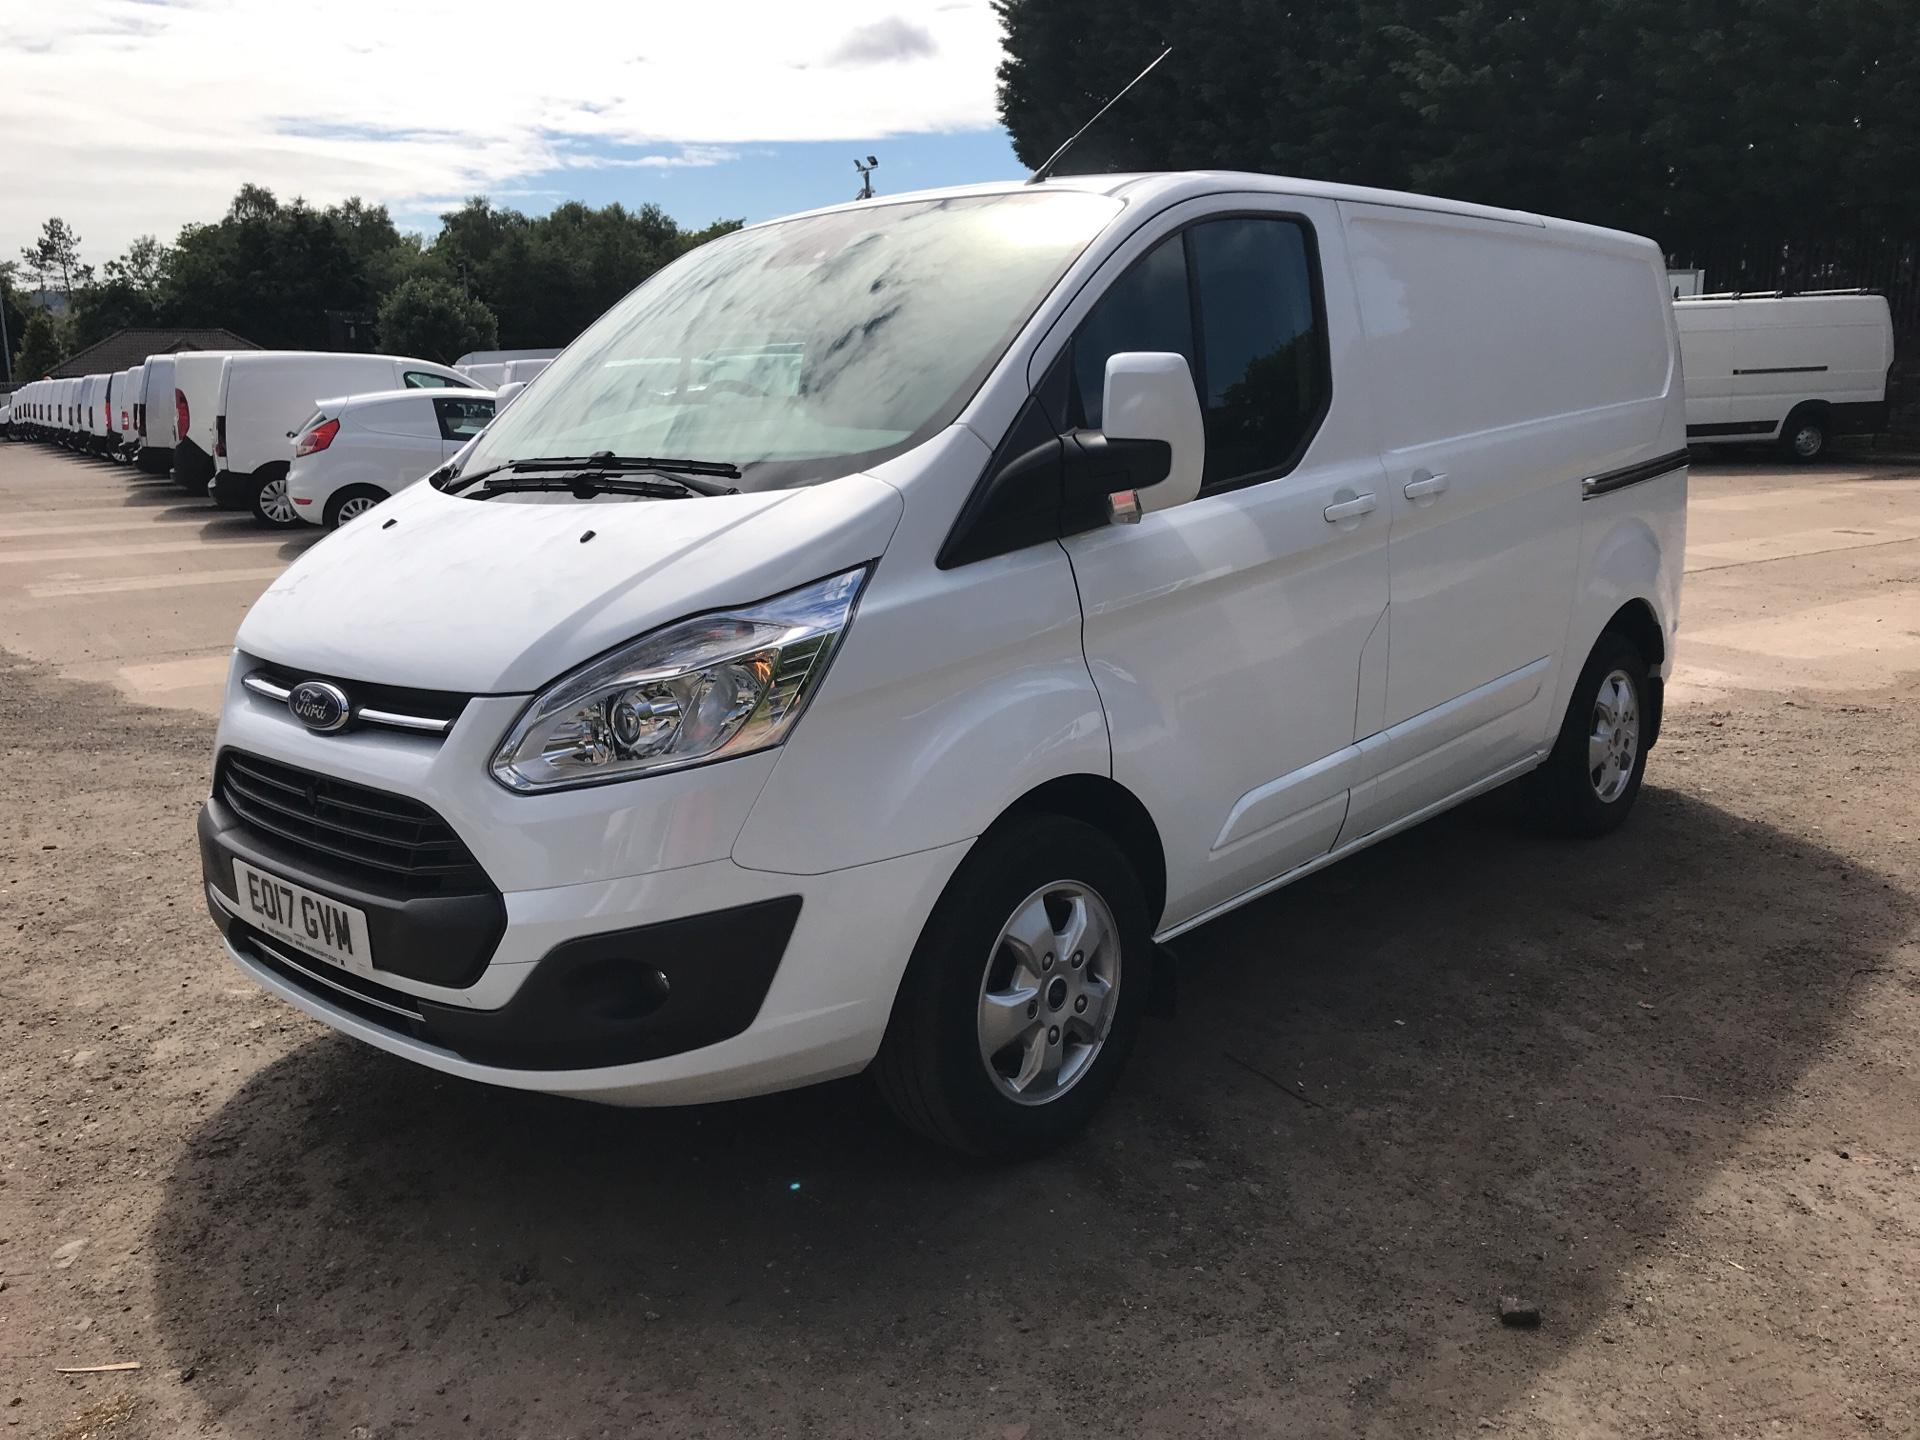 2017 Ford Transit Custom 270 L1 DIESEL FWD 2.0 TDCI 130PS LOW ROOF LIMITED EURO 6 (EO17GVM) Thumbnail 7